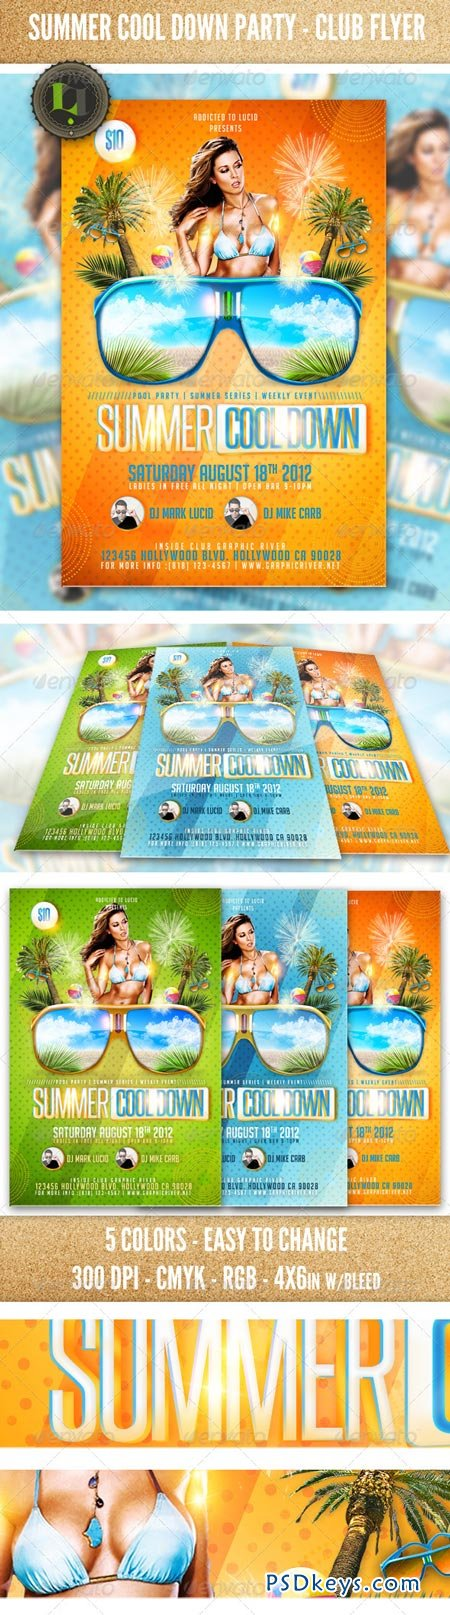 Summer Cool Down Party - Club Flyer 2429476